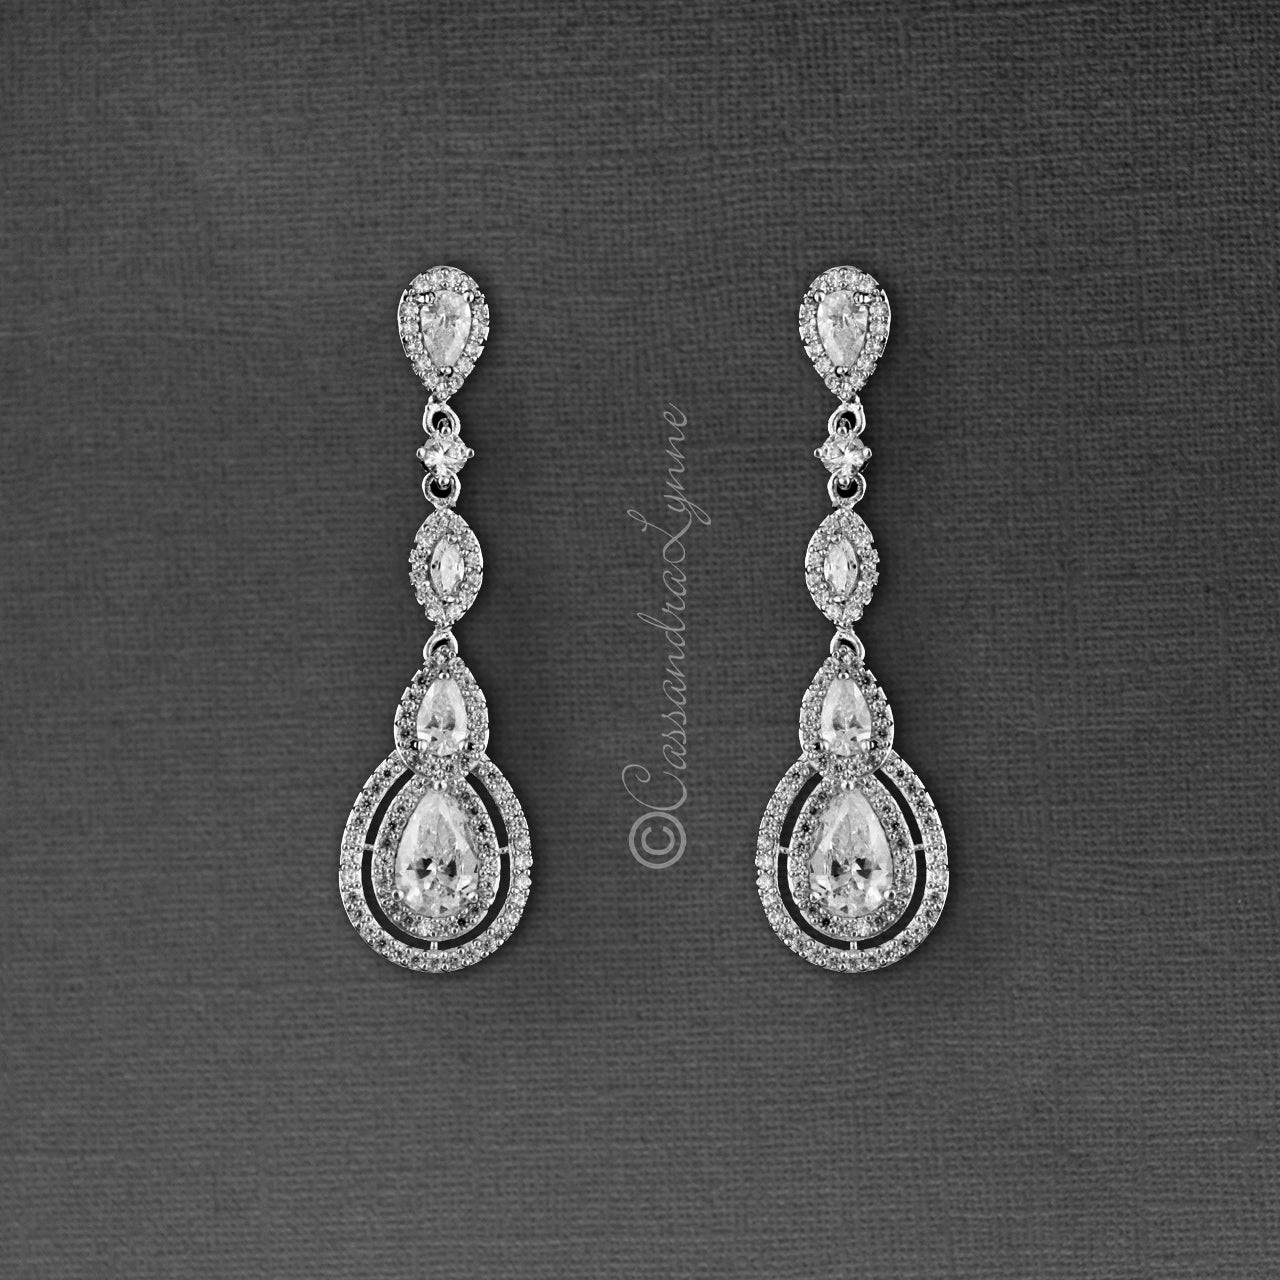 Cubic Zirconia Earrings Pave Teardrop and Marquise